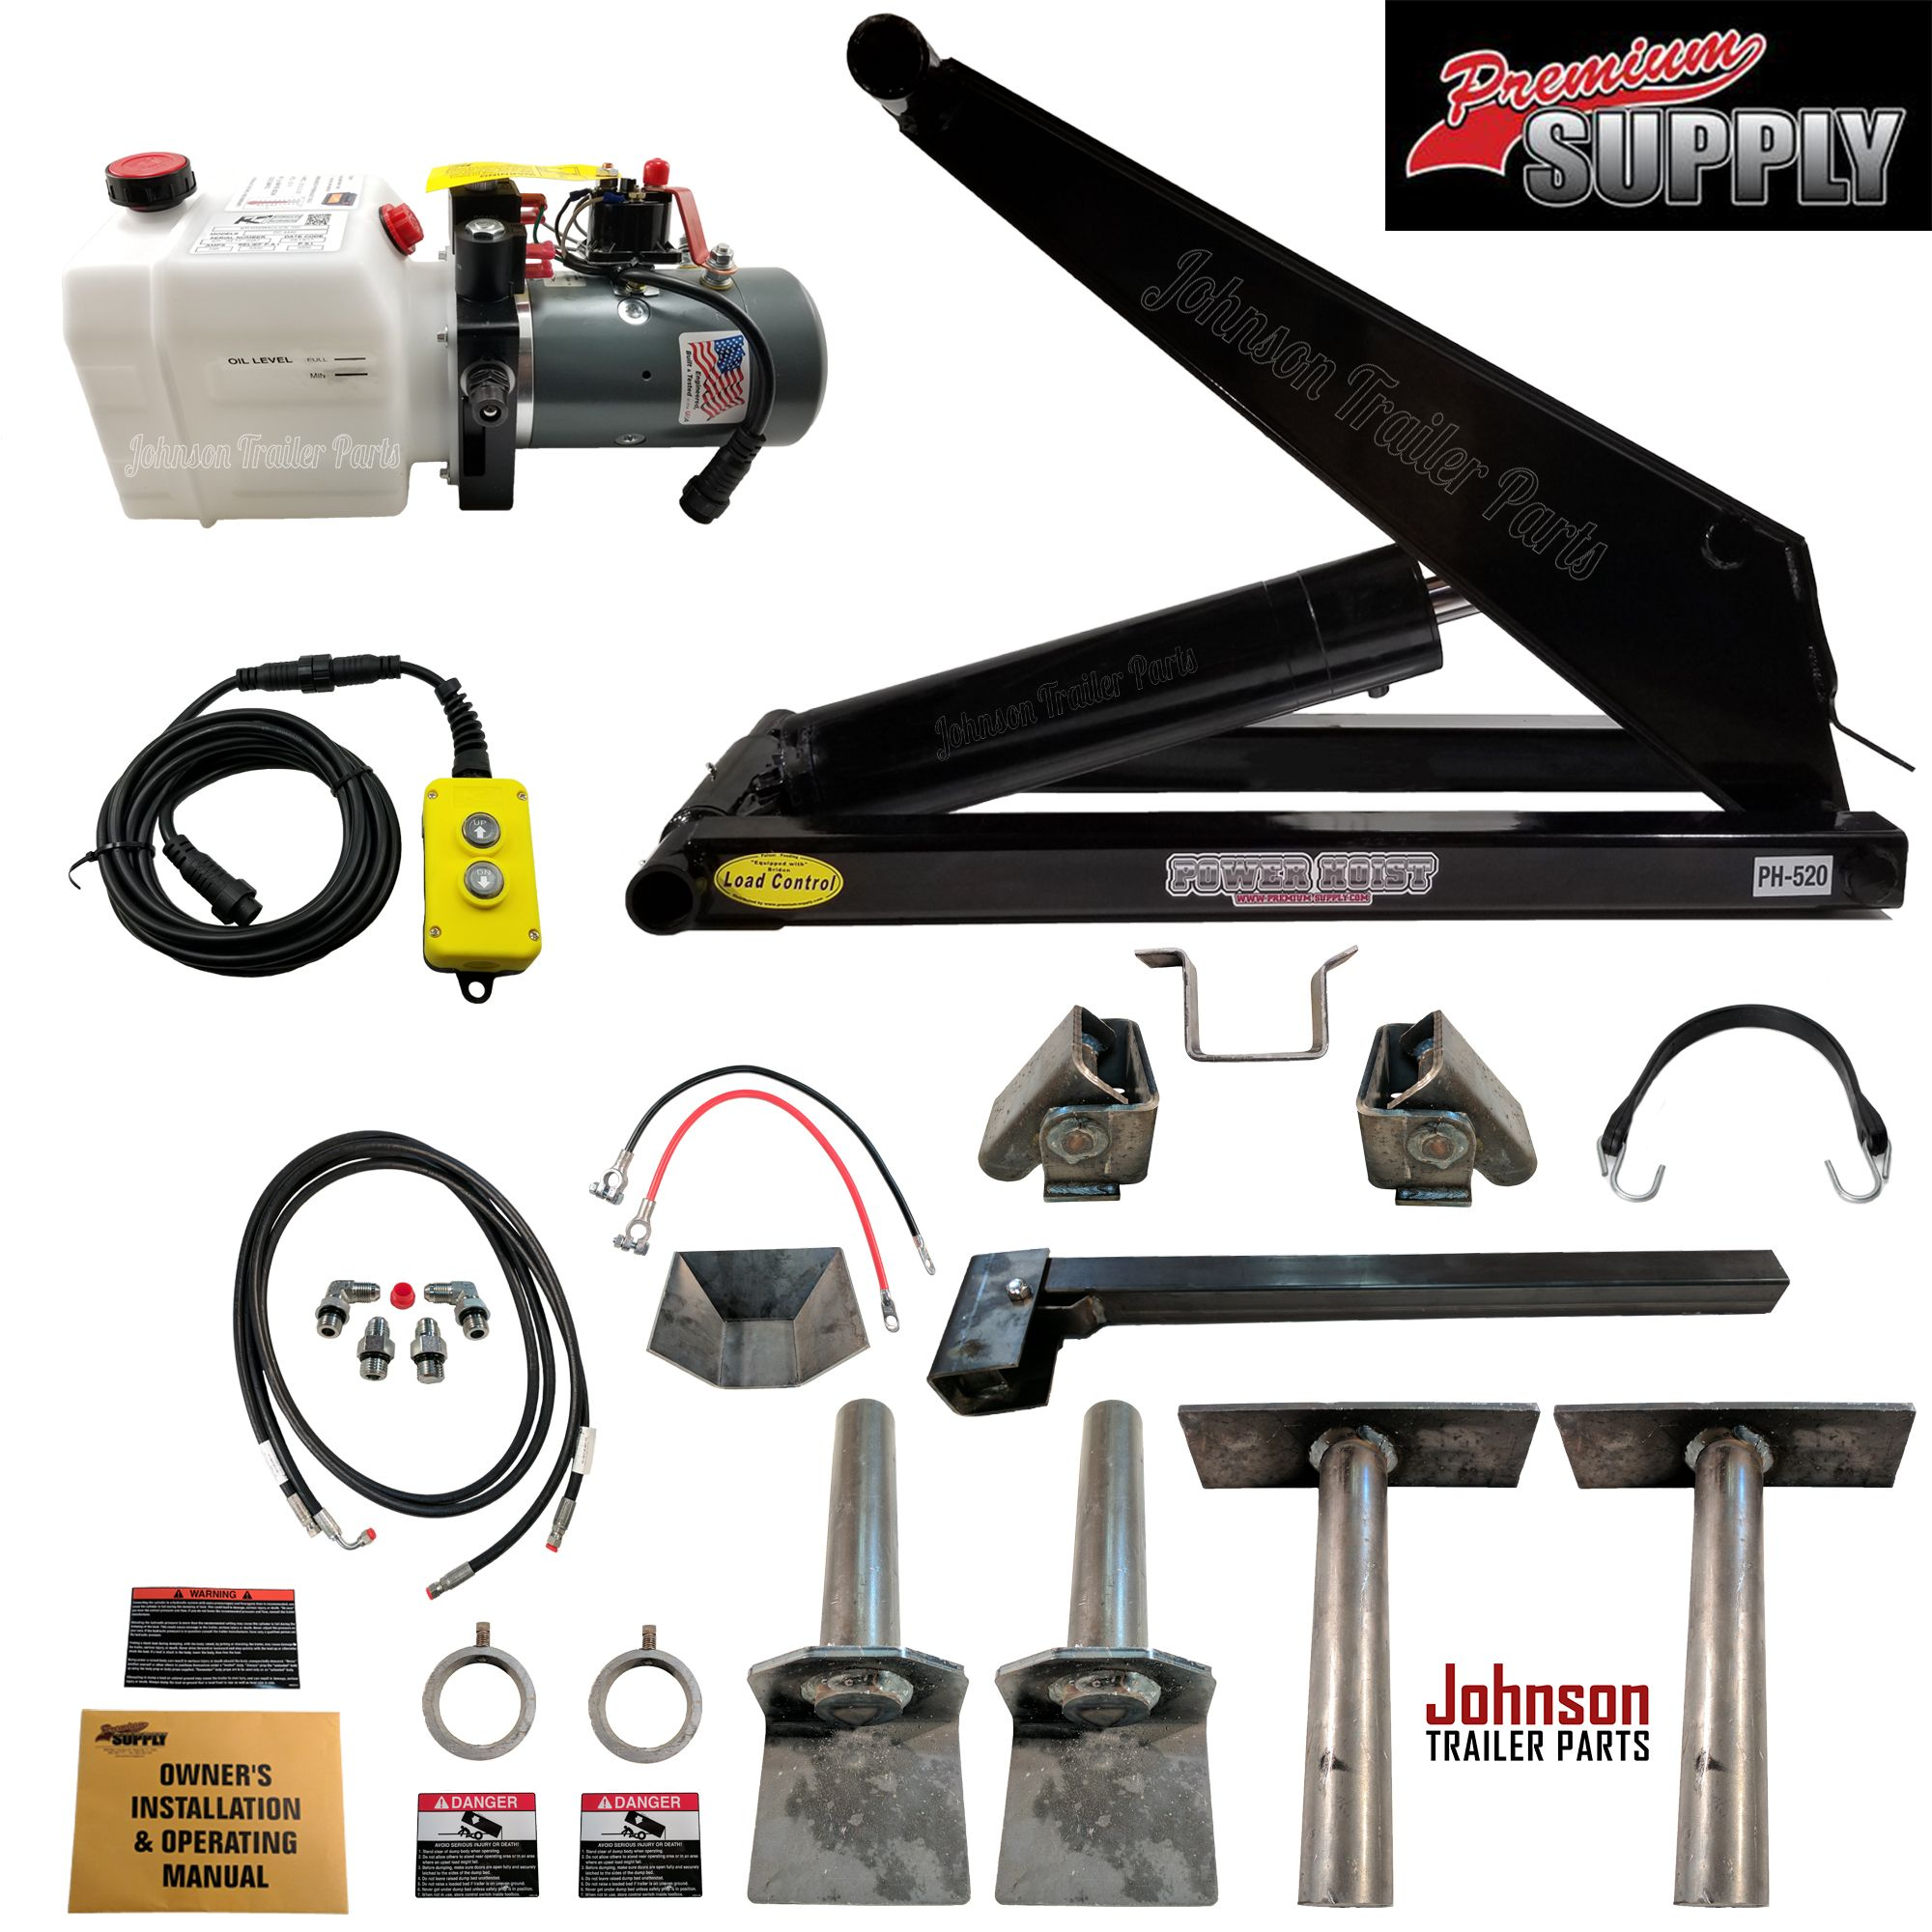 10 Ton Hydraulic Scissor Hoist Kit Ph520 Fits 10 16 Dump Beds Dump Trailers Dump Truck Bedding Trailer Axles